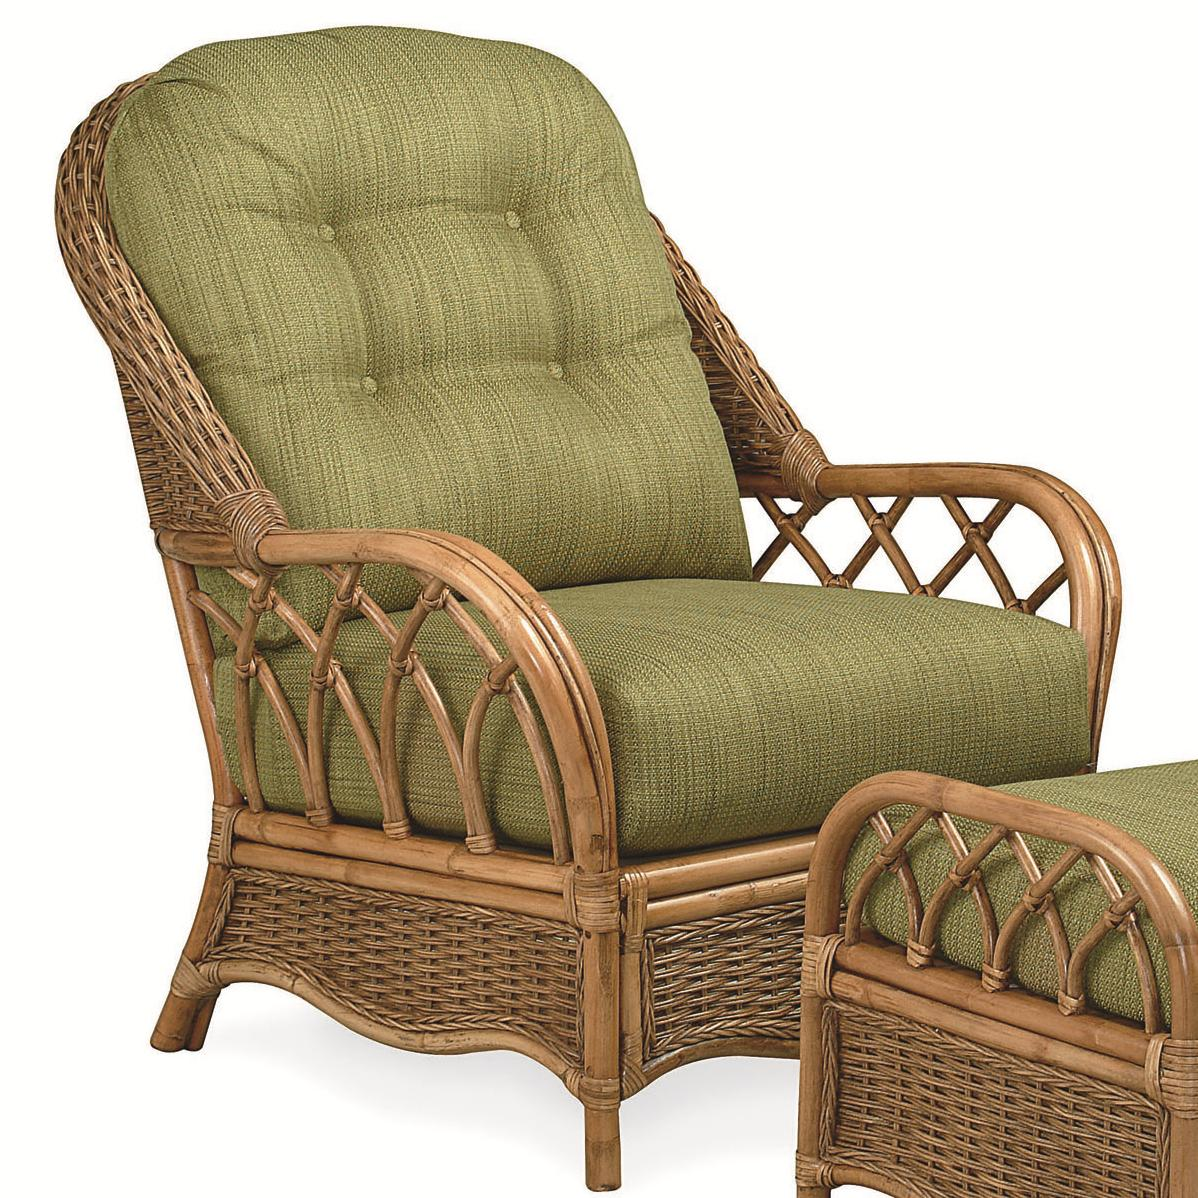 Everglade Rattan Chair by Braxton Culler at Esprit Decor Home Furnishings